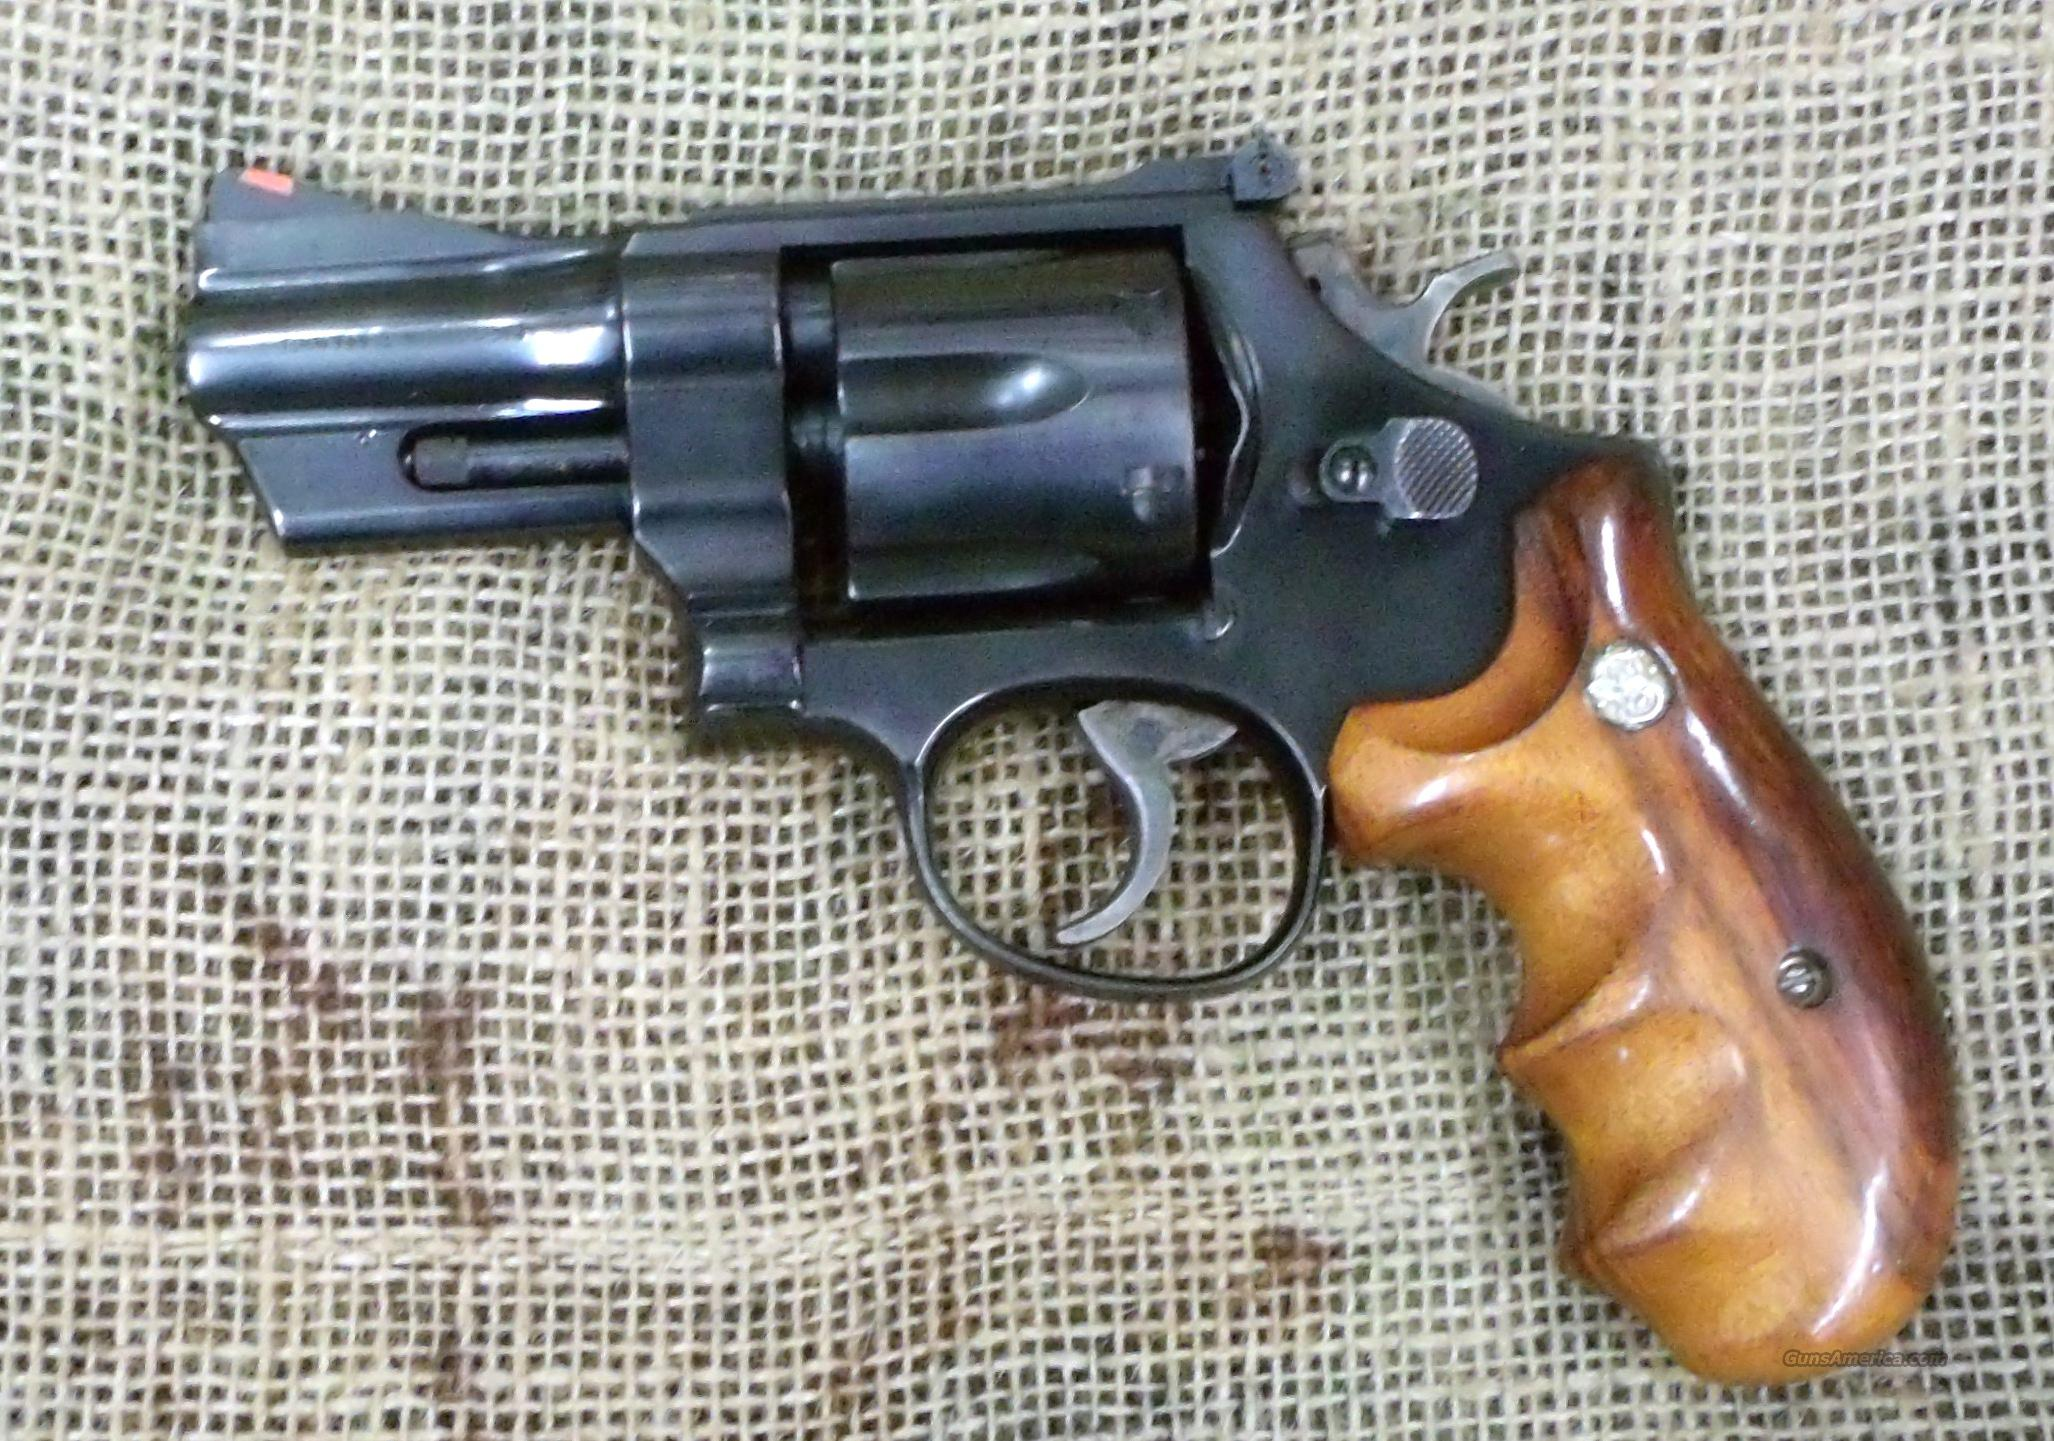 SMITH & WESSON Model 24-3, 3 inch Barrel   Guns > Pistols > Smith & Wesson Revolvers > Full Frame Revolver